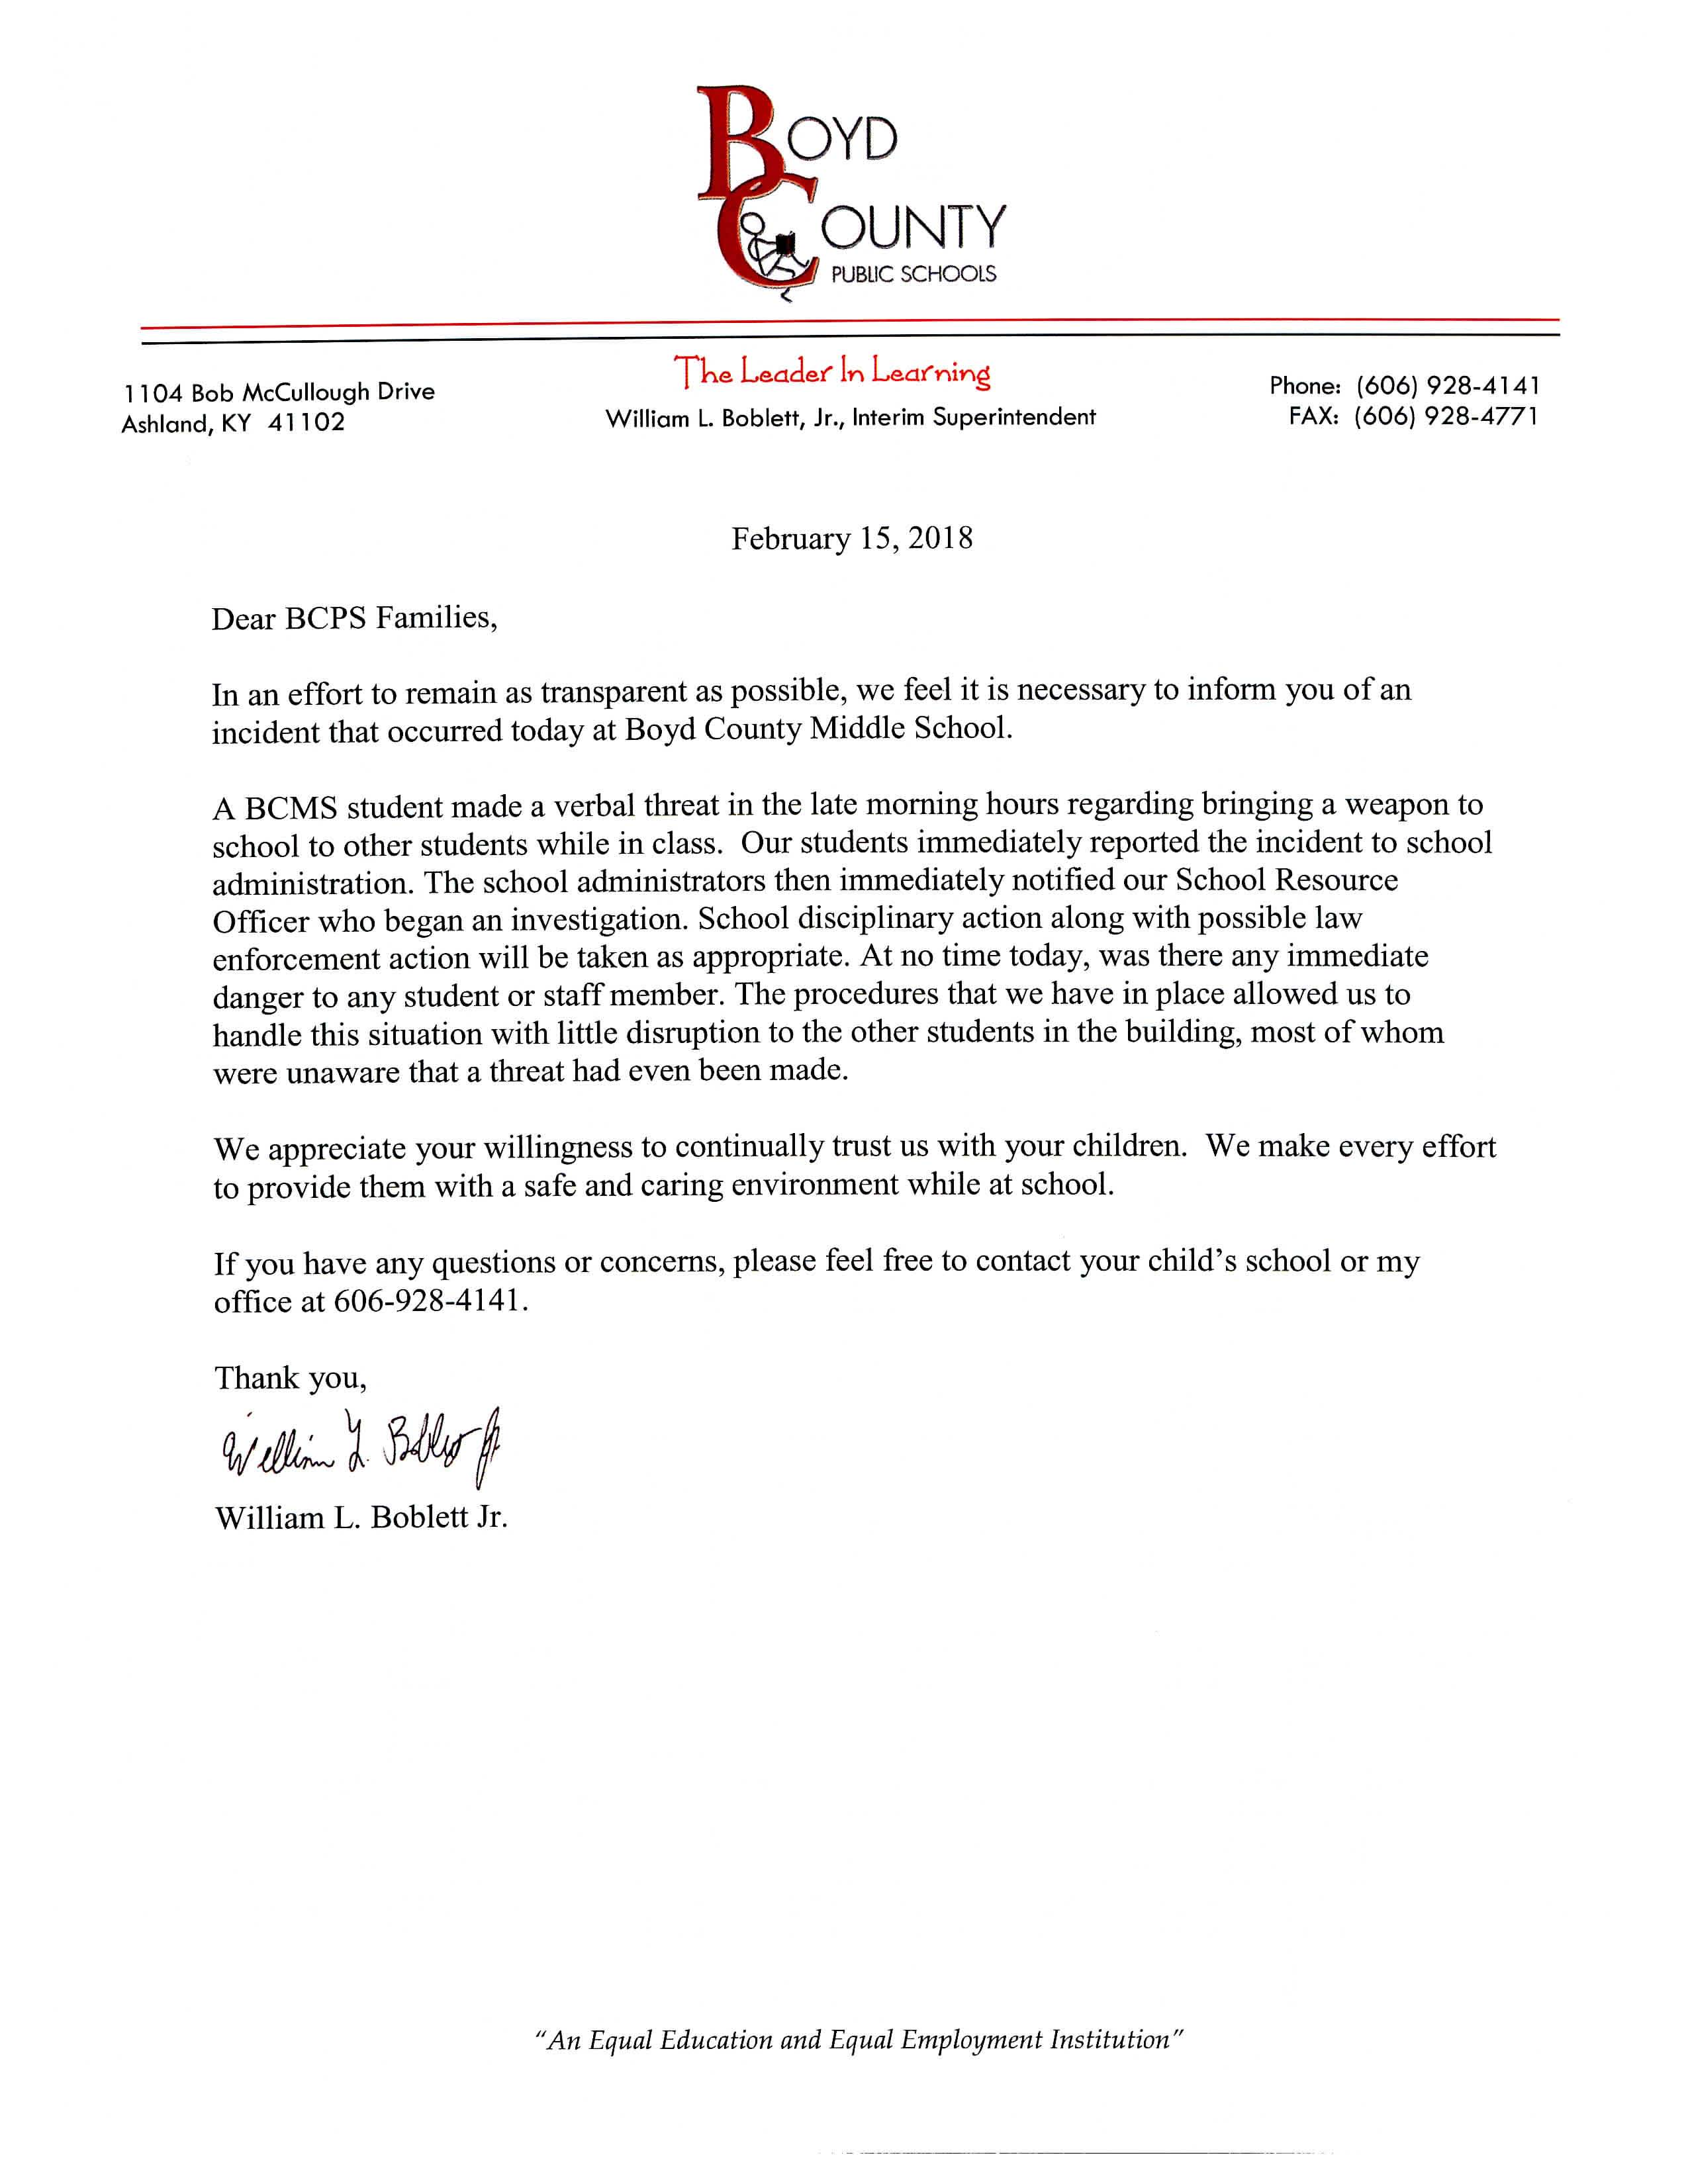 Letter from the superintendent regarding a verbal threat.